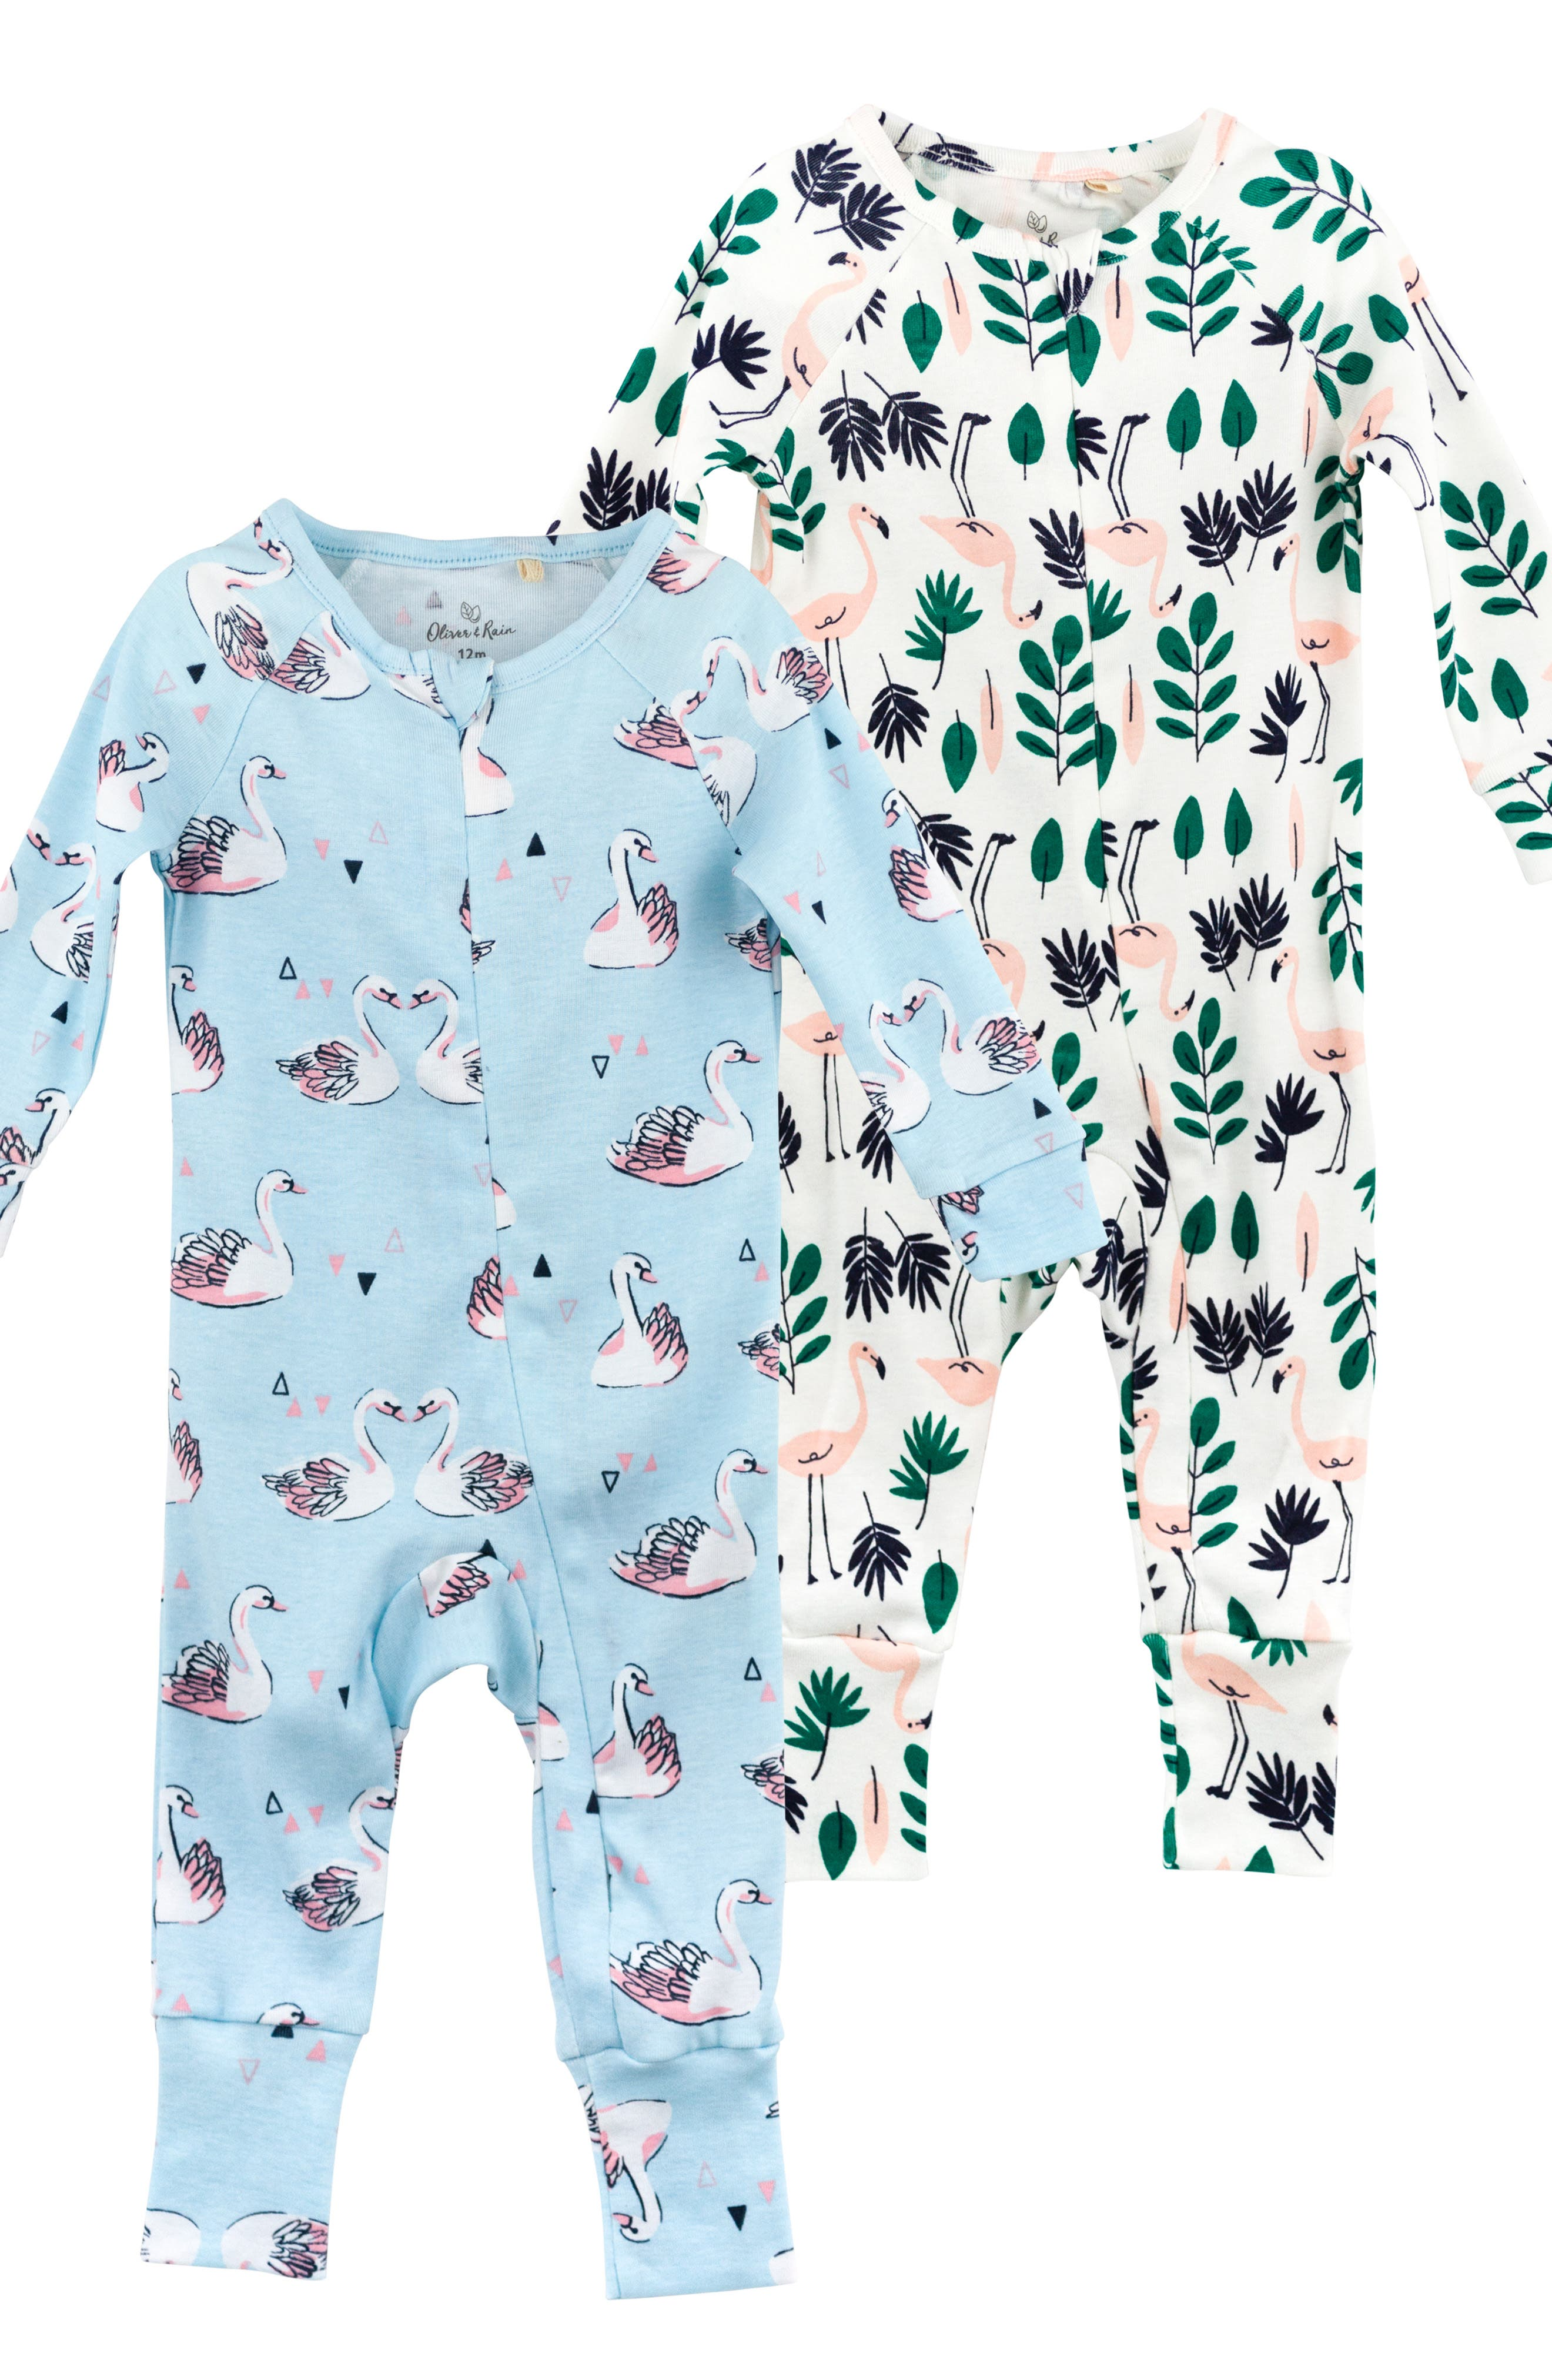 Infant Girls Oliver  Rain 2Pack Organic Cotton Fitted OnePiece Pajamas Size 24M  Blue